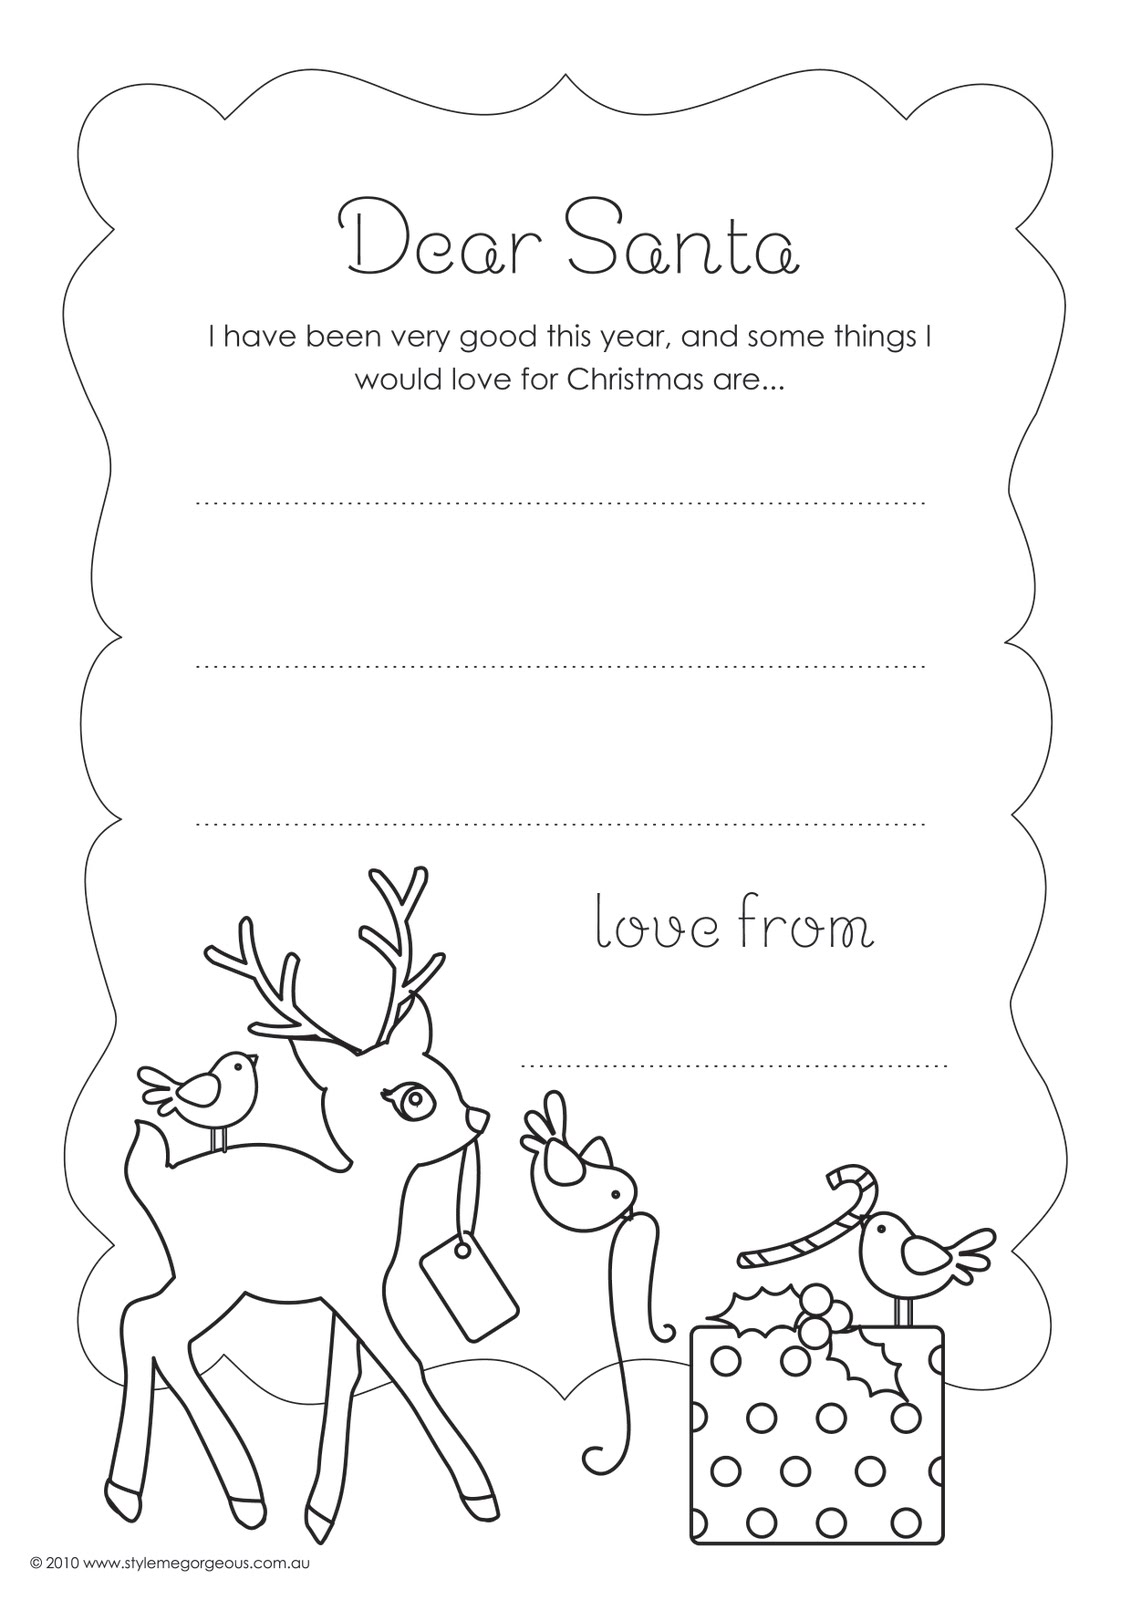 Style Me Gorgeous Free Colour In Letter To Santa Letter To Santa Coloring Page